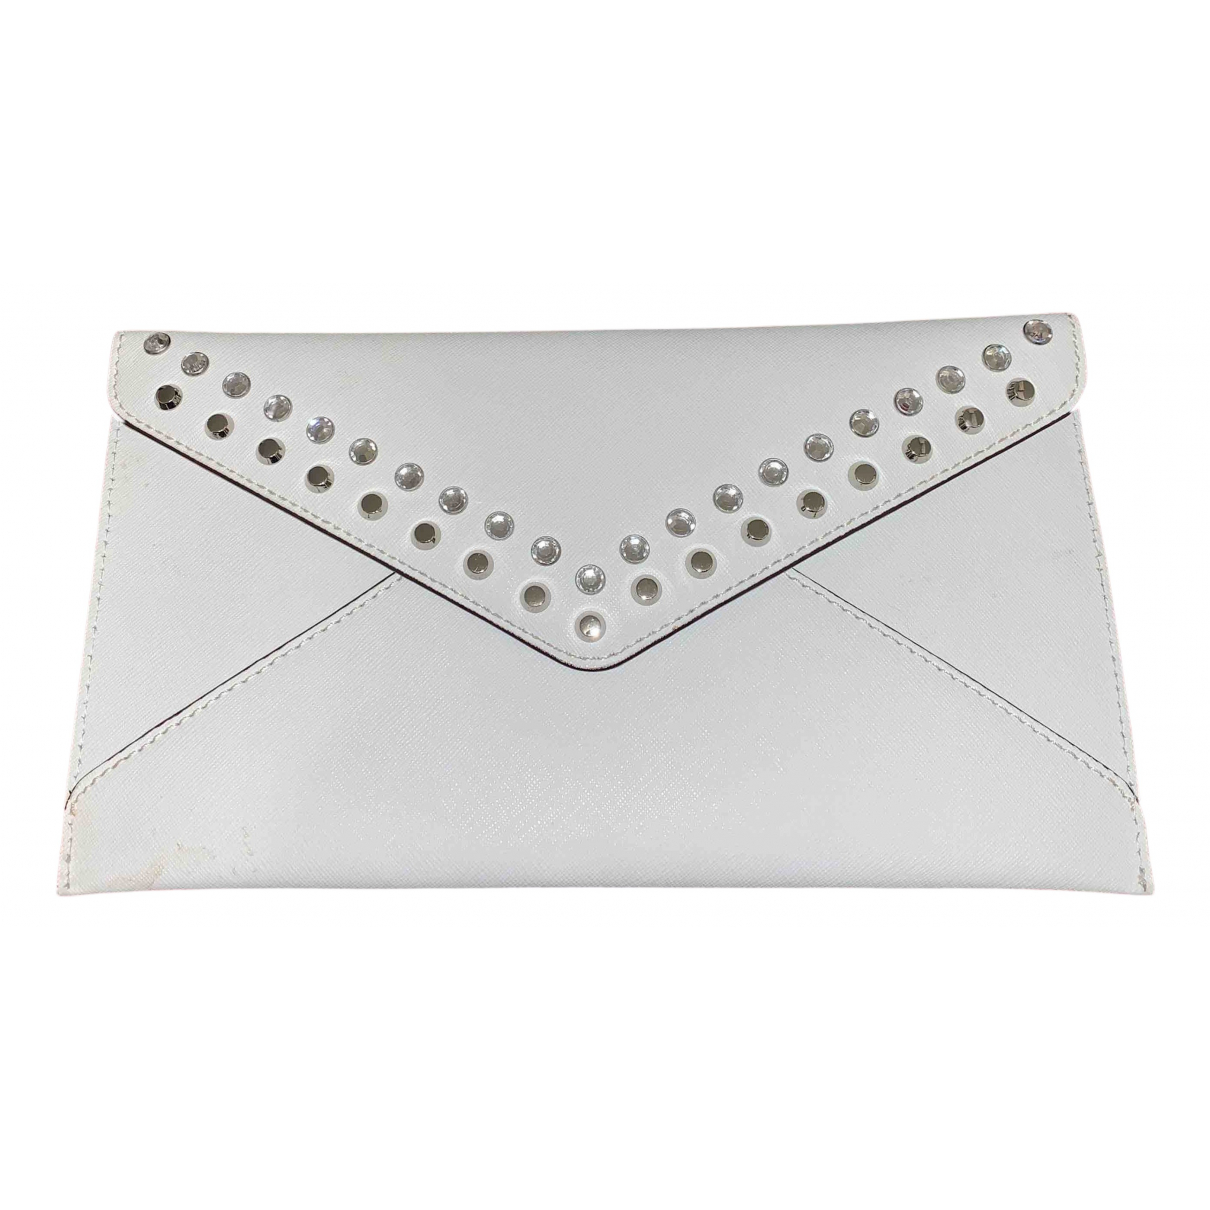 Michael Kors \N Clutch in  Weiss Leder